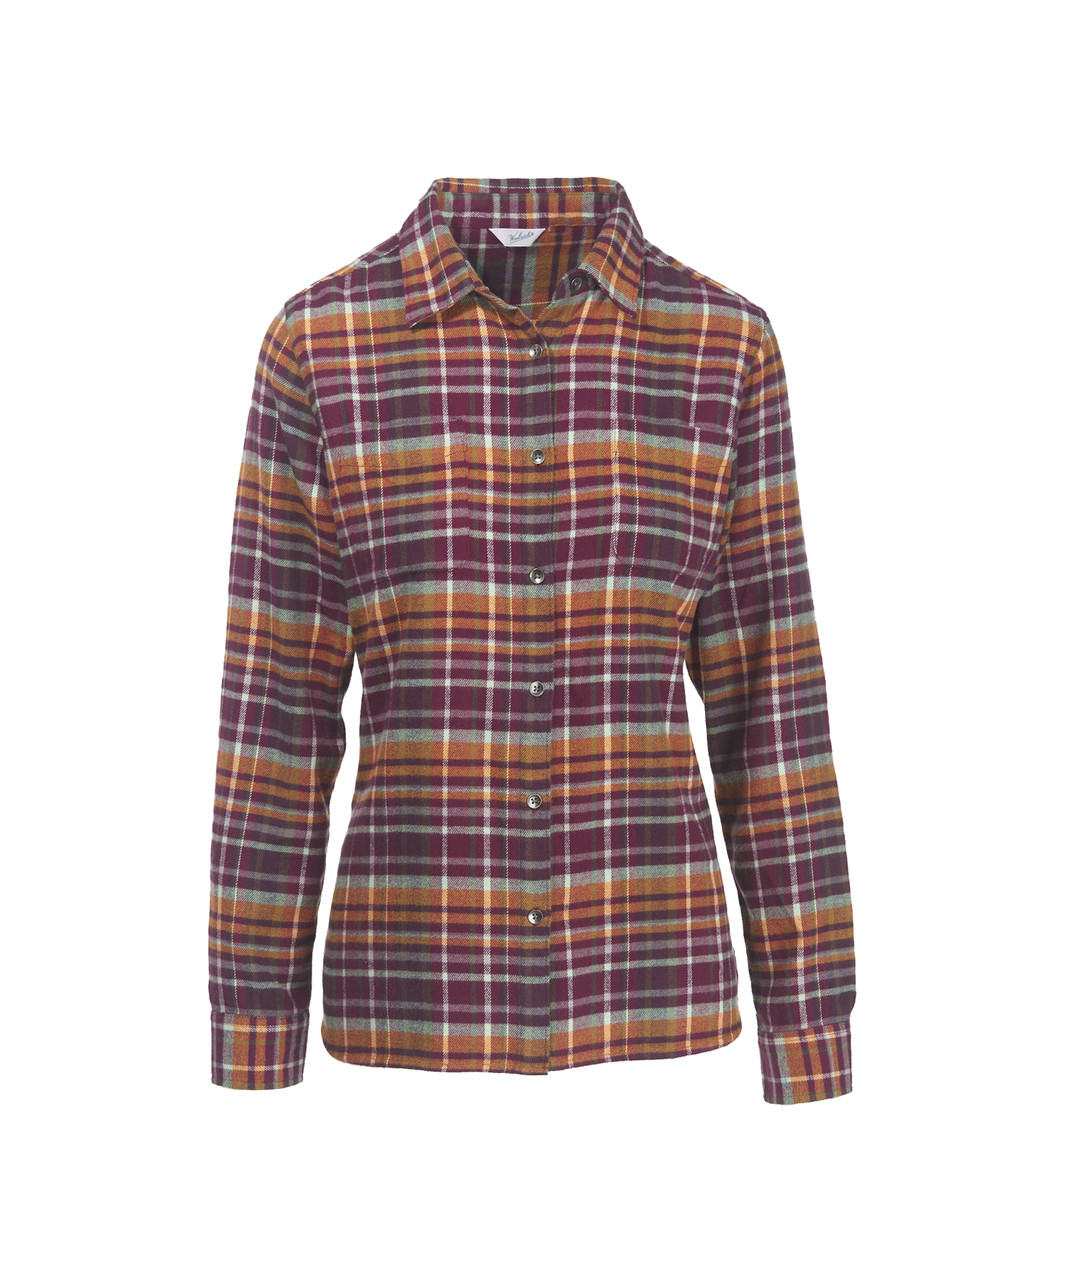 64334fa70 Women's Pemberton Flannel Shirt - 100% Cotton - Woolrich